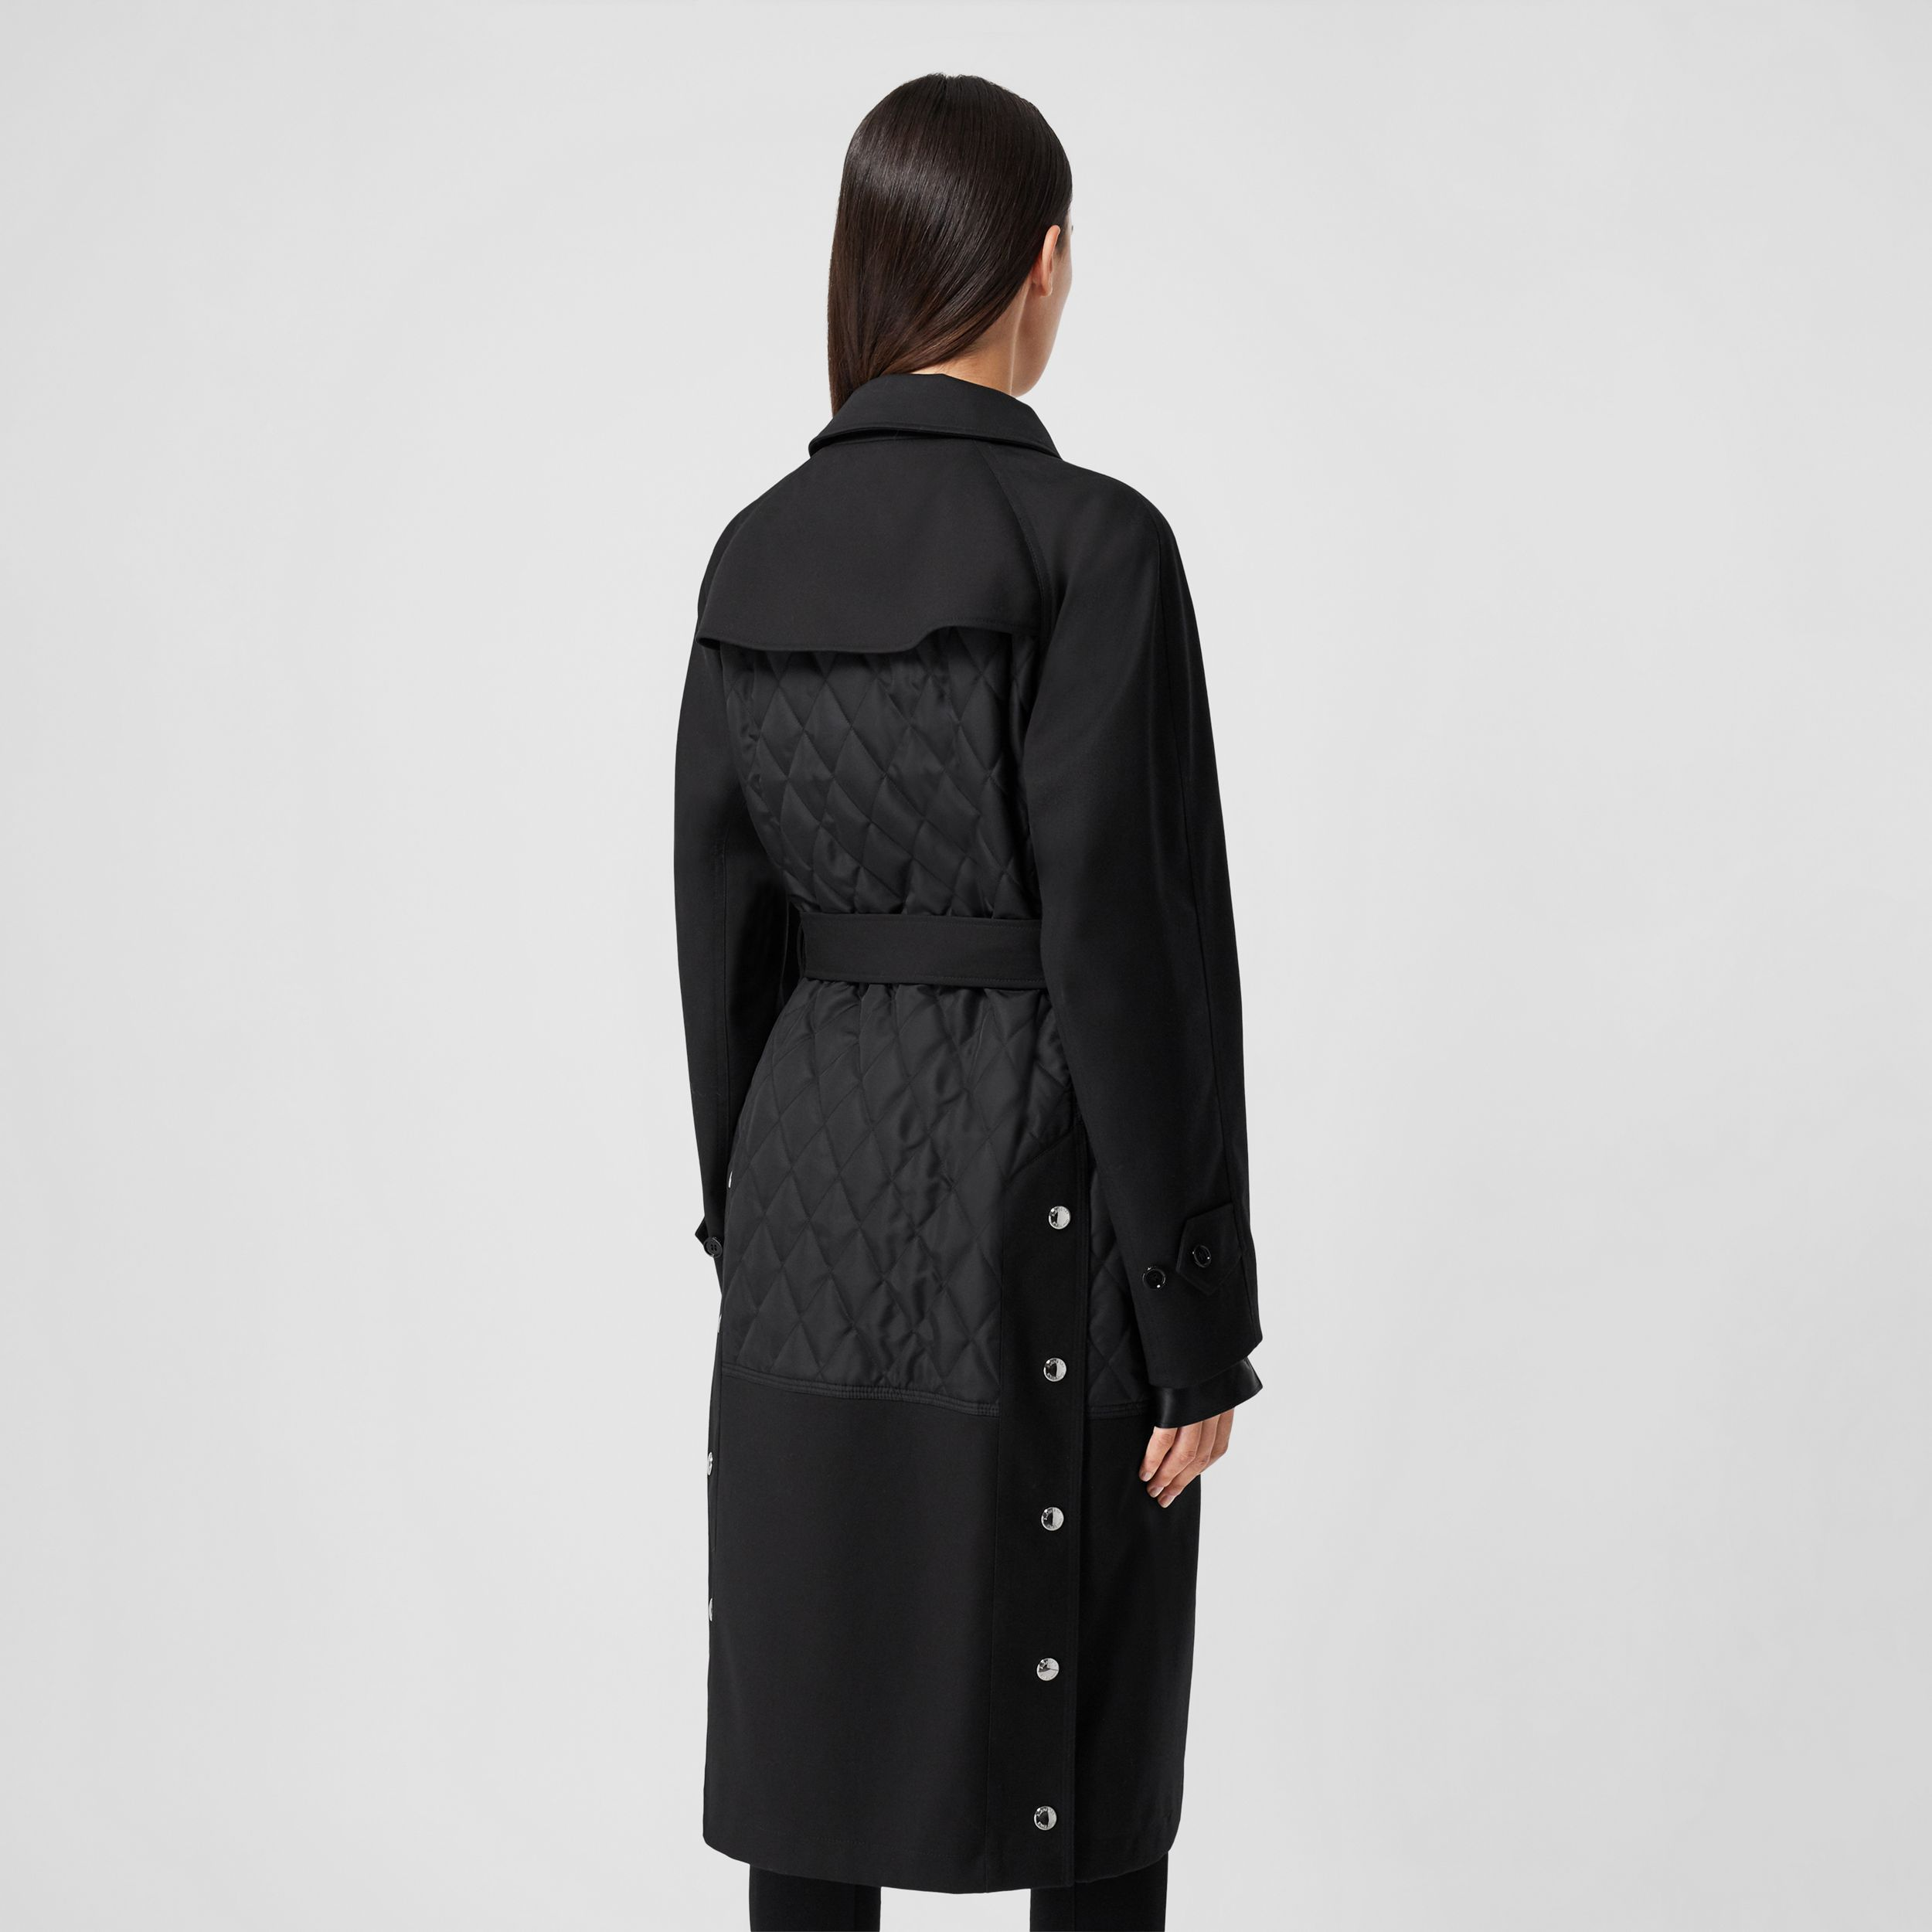 Diamond Quilted Panel Cotton Gabardine Car Coat in Black - Women | Burberry Canada - 3